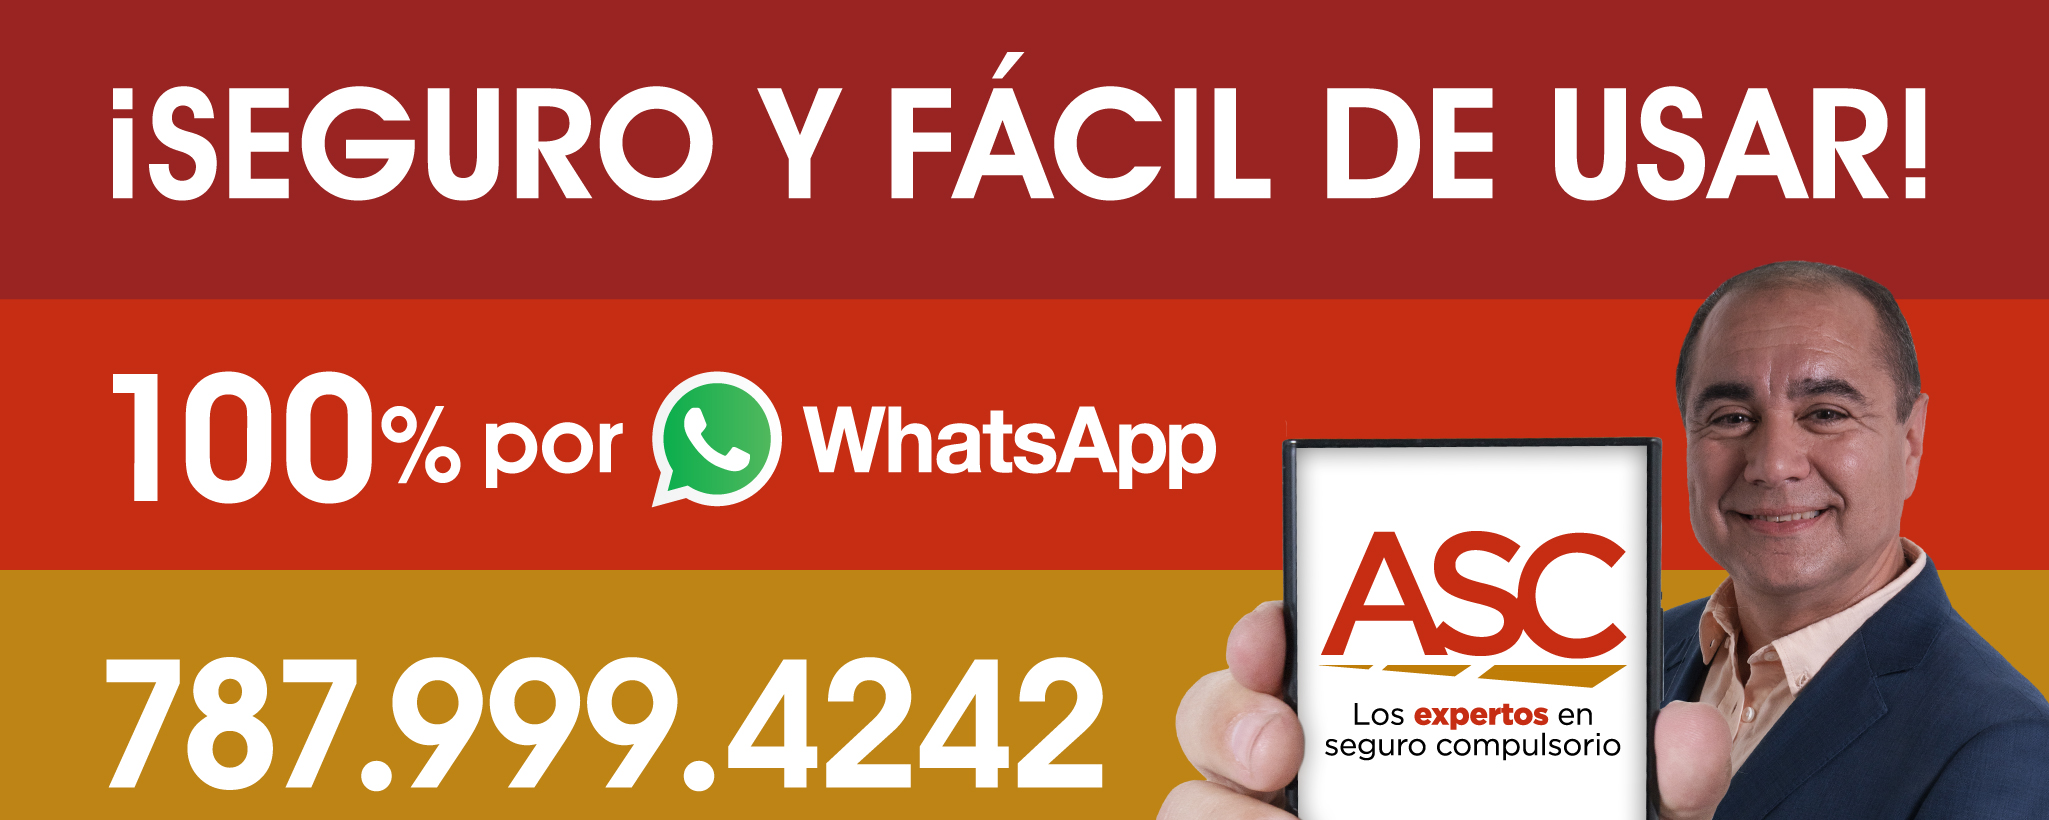 Resuelves todo por Whatsapp